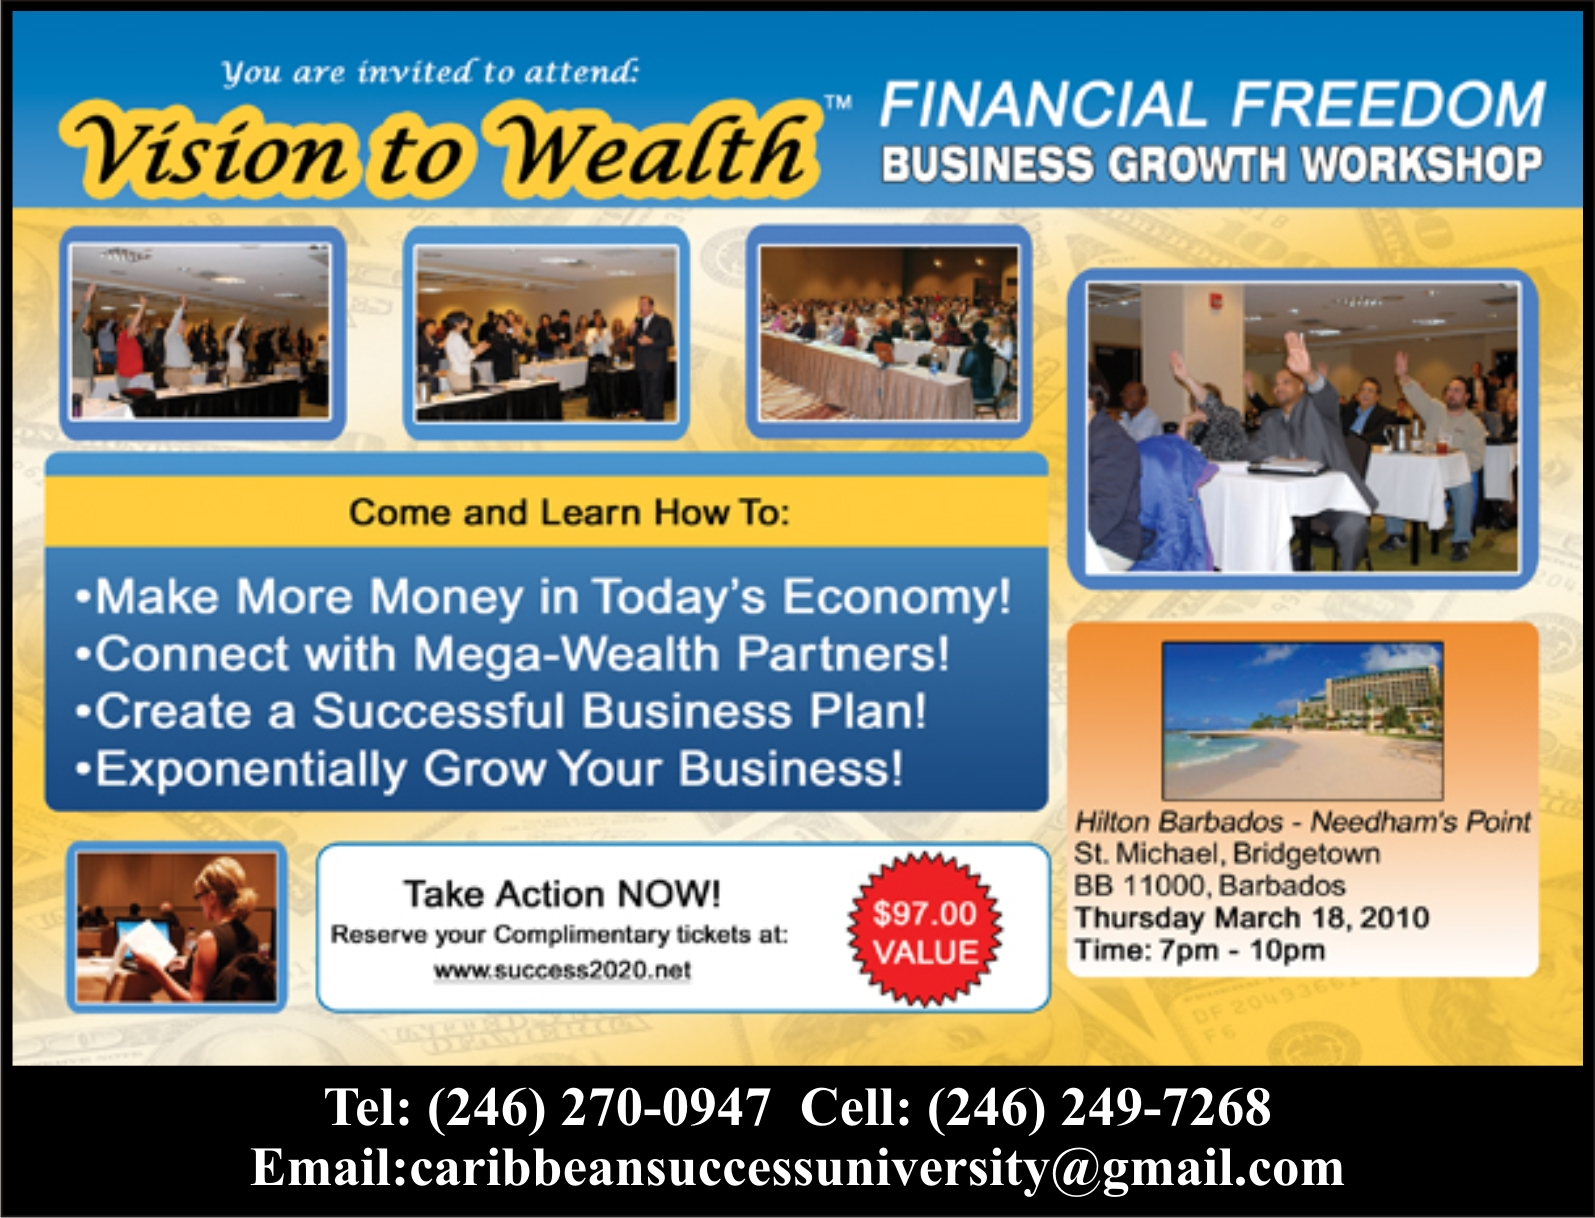 Bill Walsh To Give a Free 3 Hr Vision To Wealth Seminar In Barbados